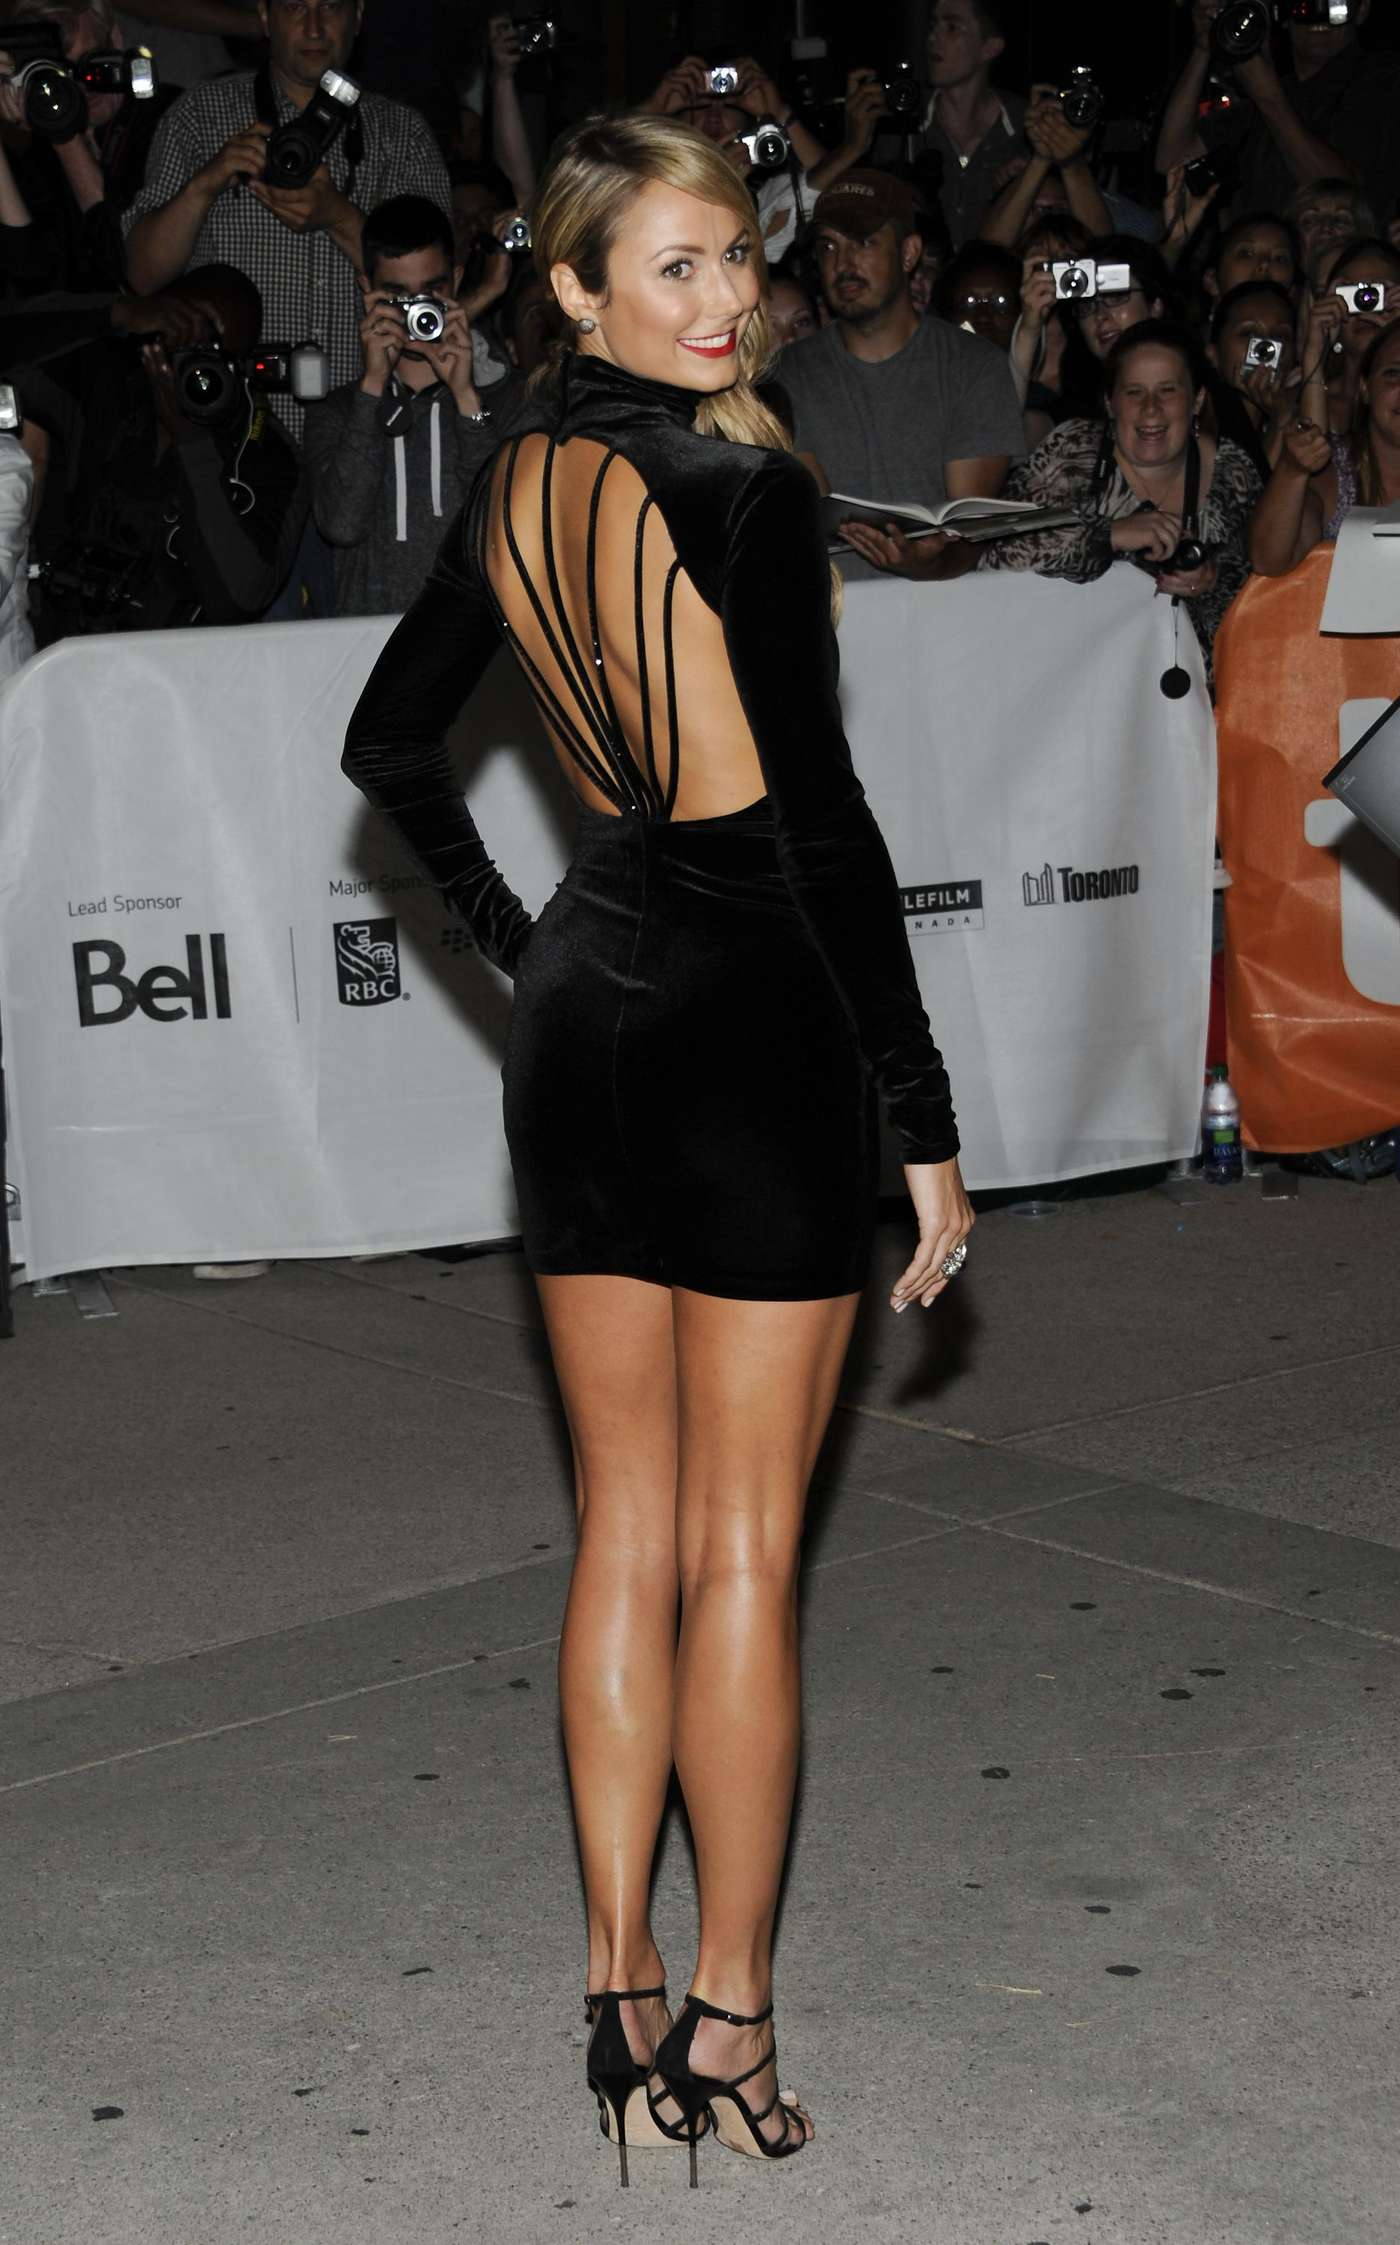 Stacy Keibler Wear Sexy Black Short Dress At The Ides Of